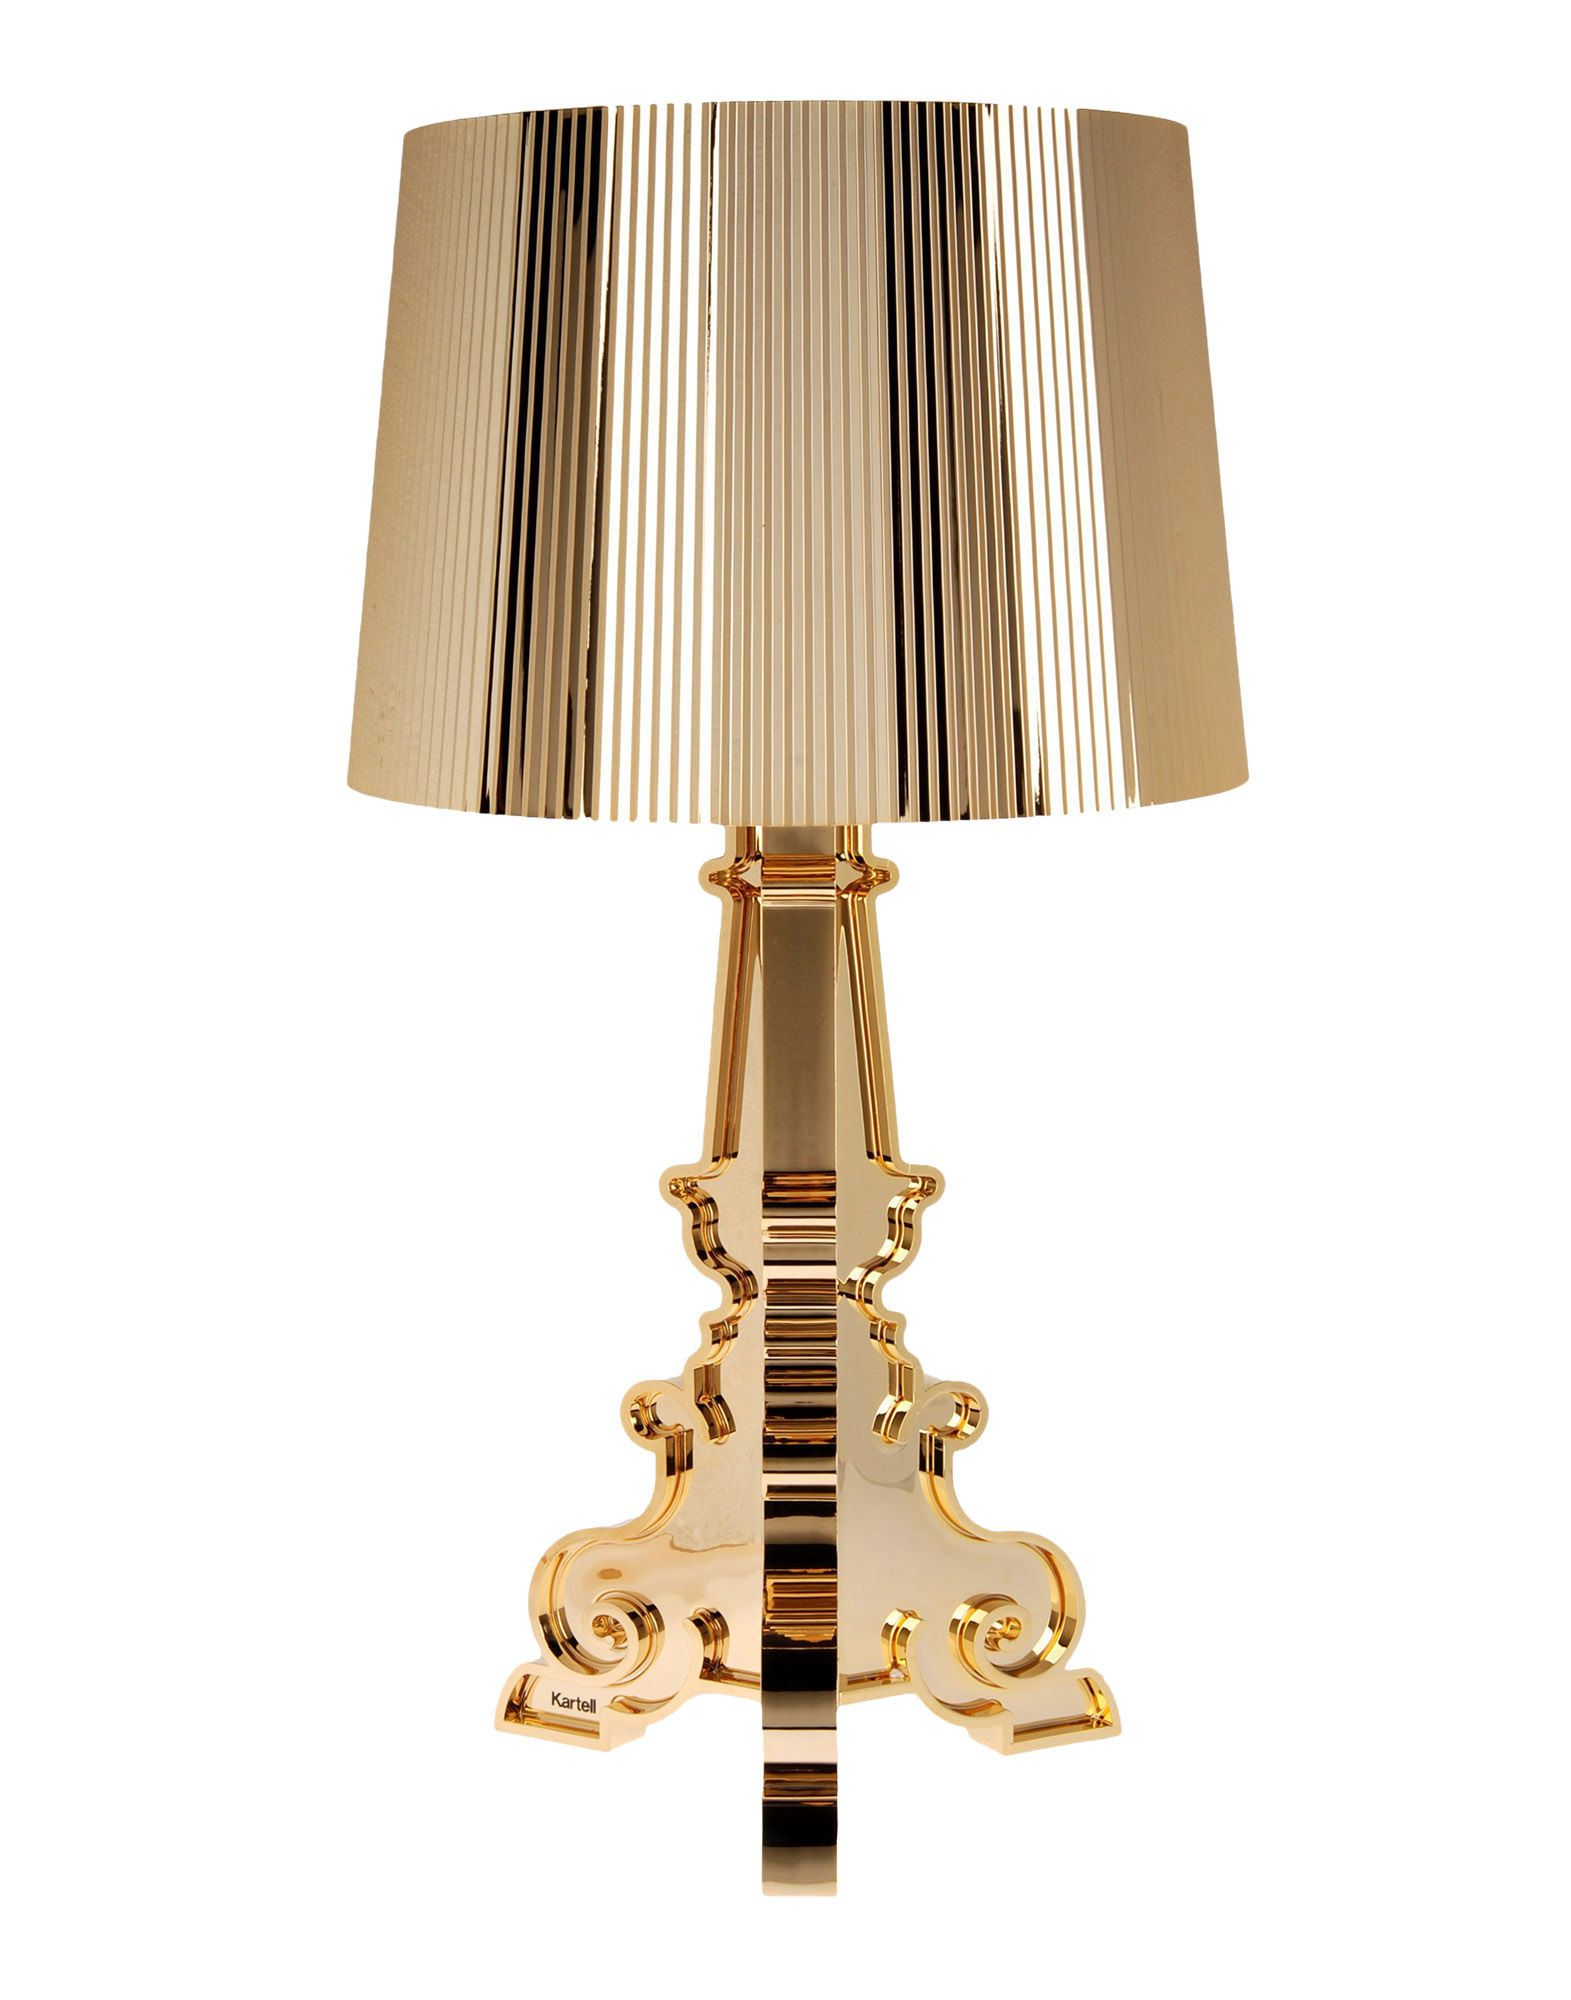 KARTELL Настольная лампа japanese creative aisle lamp modern minimalist wood wall sconces corridor living room bedroom bedside lighting fixture wl303